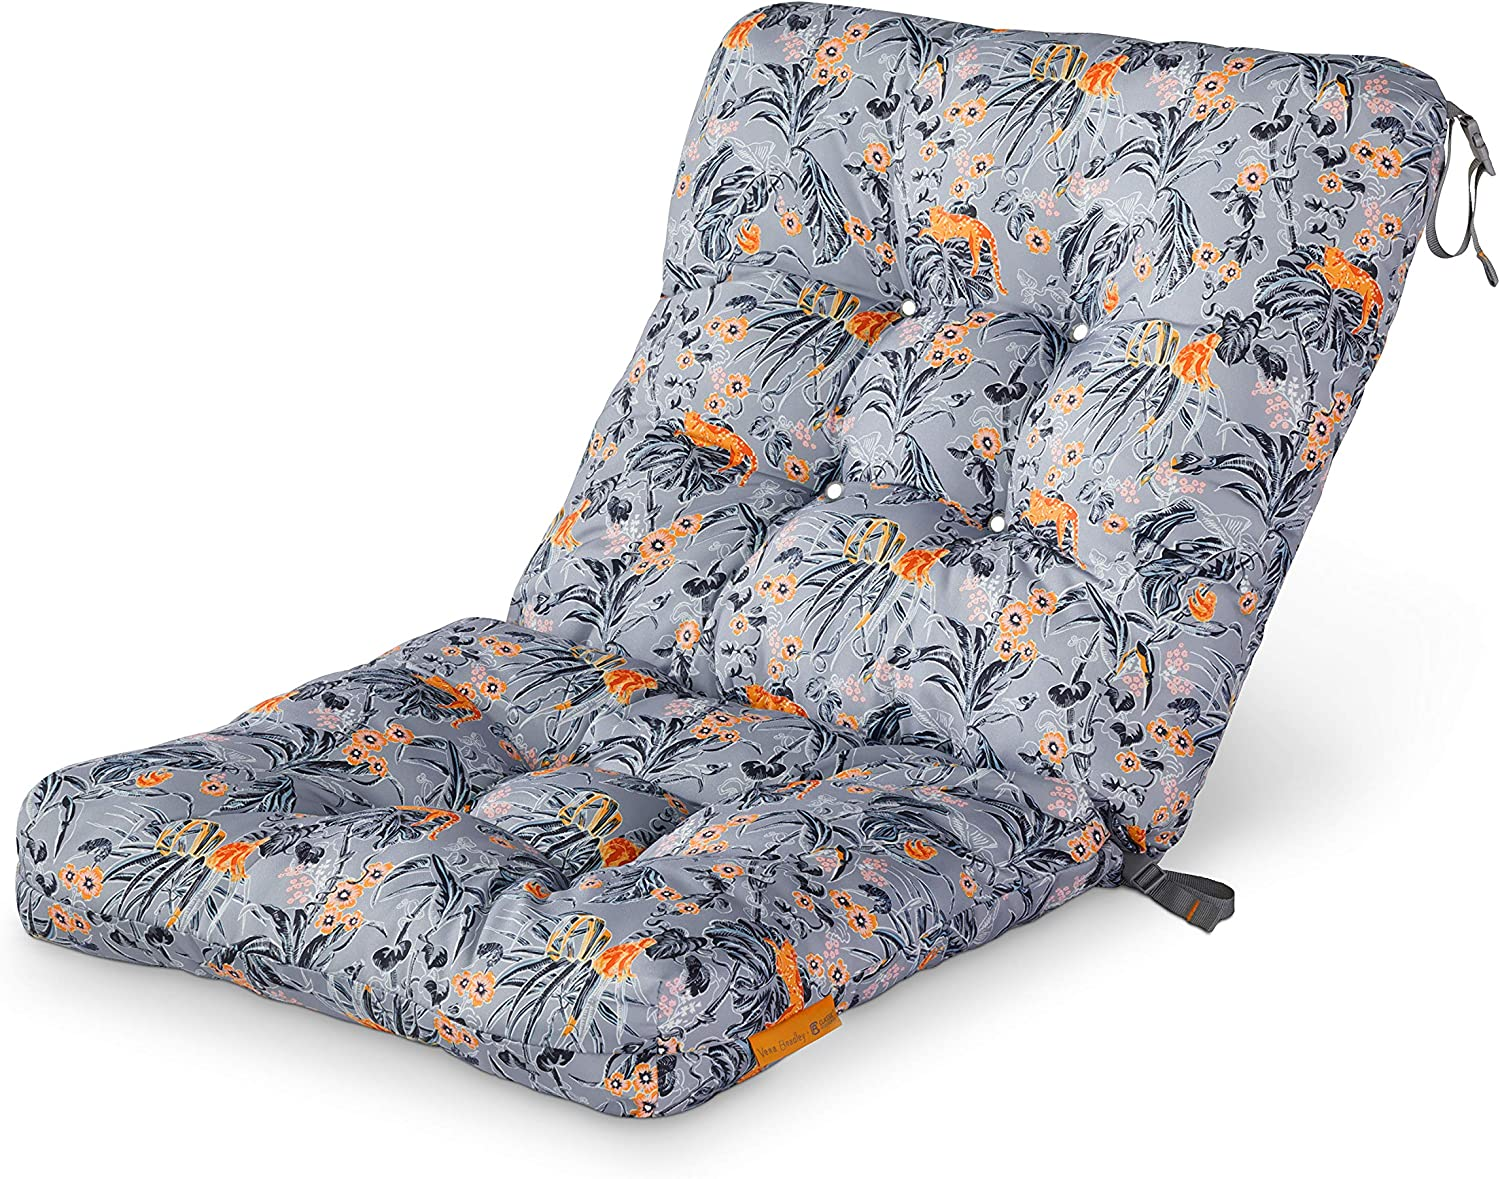 Vera Bradley by Classic Accessories Water-Resistant Patio Chair Cushion, 21 x 19 x 22.5 x 5 Inch, Rain Forest Toile Gray/Gold